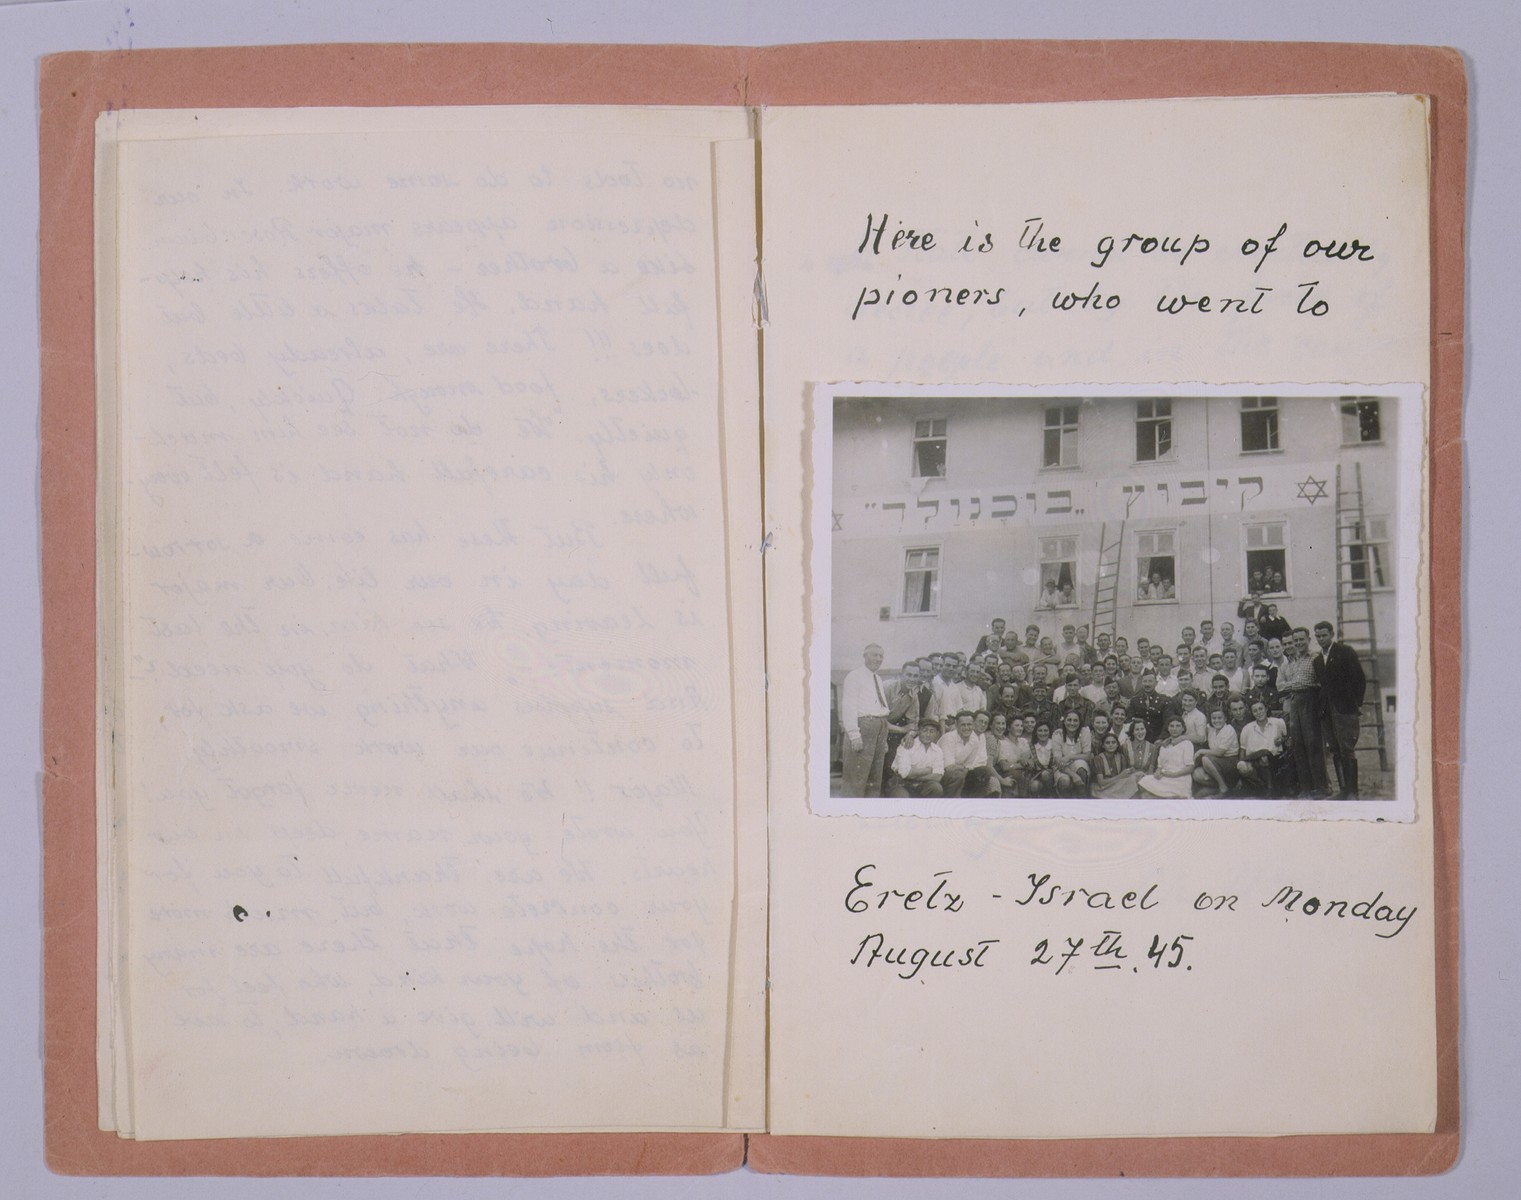 One page of a booklet produced by a member of the hachshara (Zionist collective) Kibbutz Buchenwald, featuring a group portrait of members of the collective taken beneath the Kibbutz Buchenwald banner.  The group in the photograph photograph departed for Palestine on August 27, 1945.